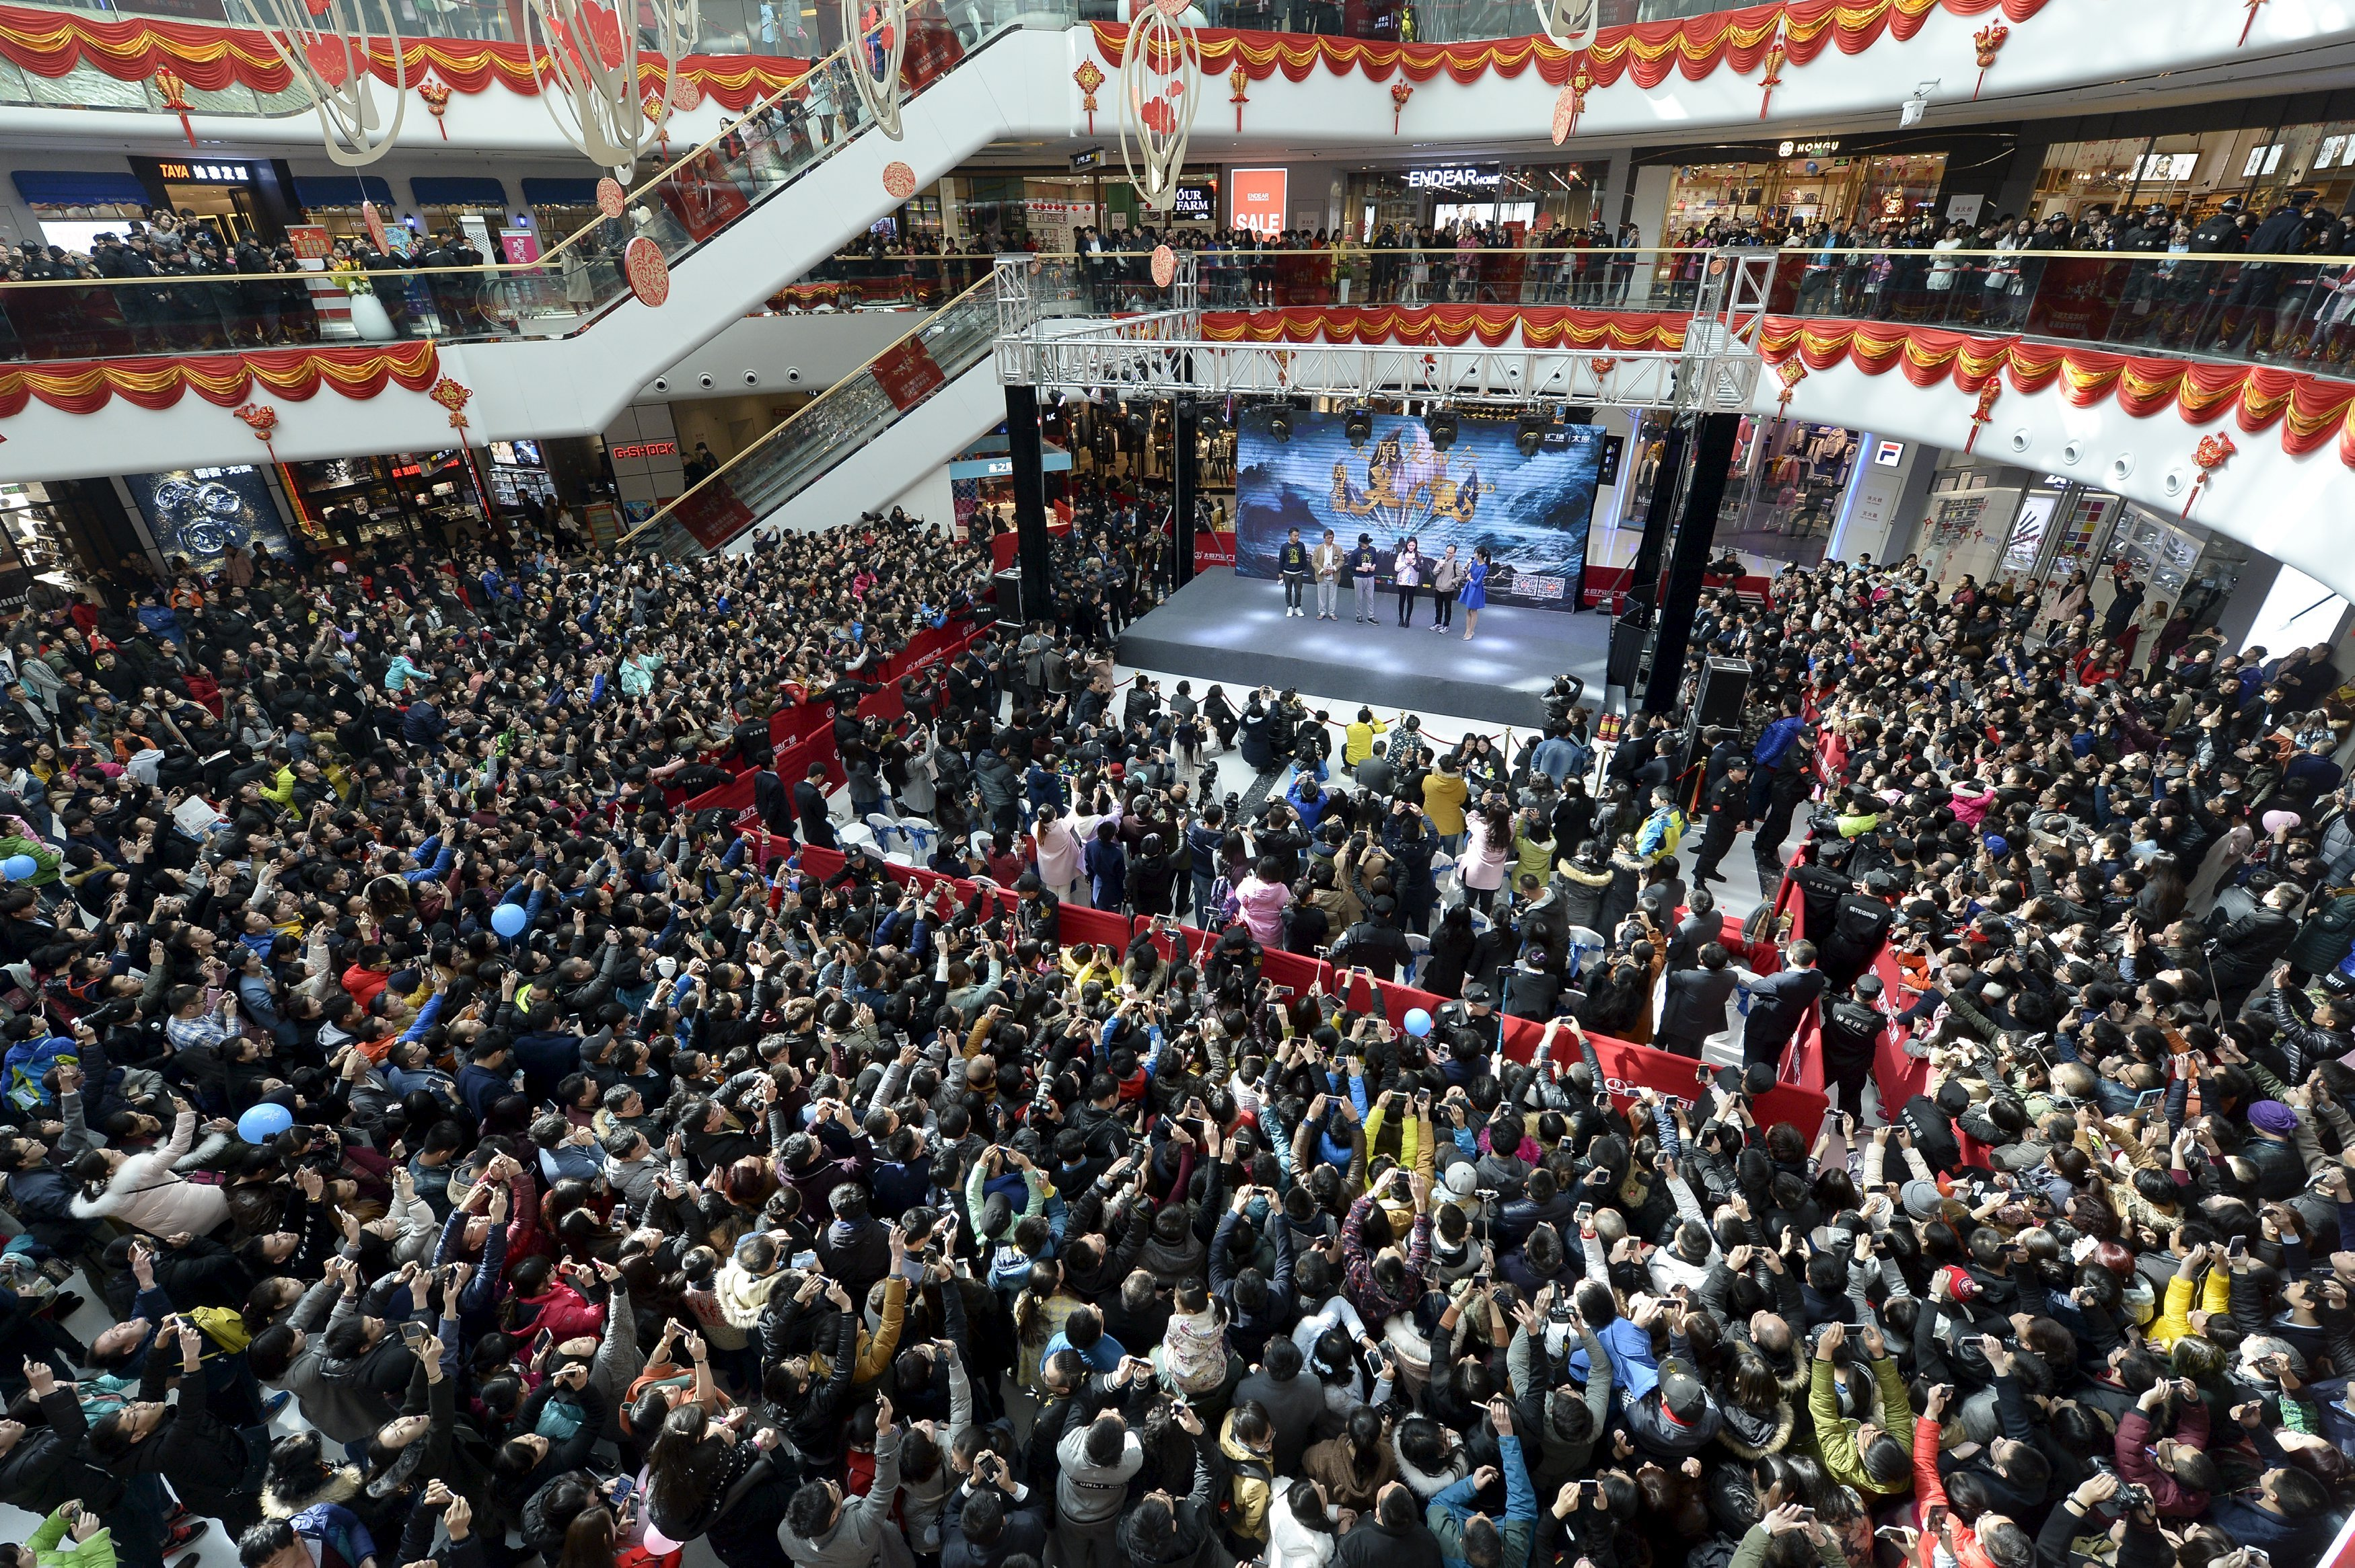 People attend a promotional event with Hong Kong star Stephen Chow for the film, The Mermaid, in Taiyuan, China, on Feb. 17, 2016.